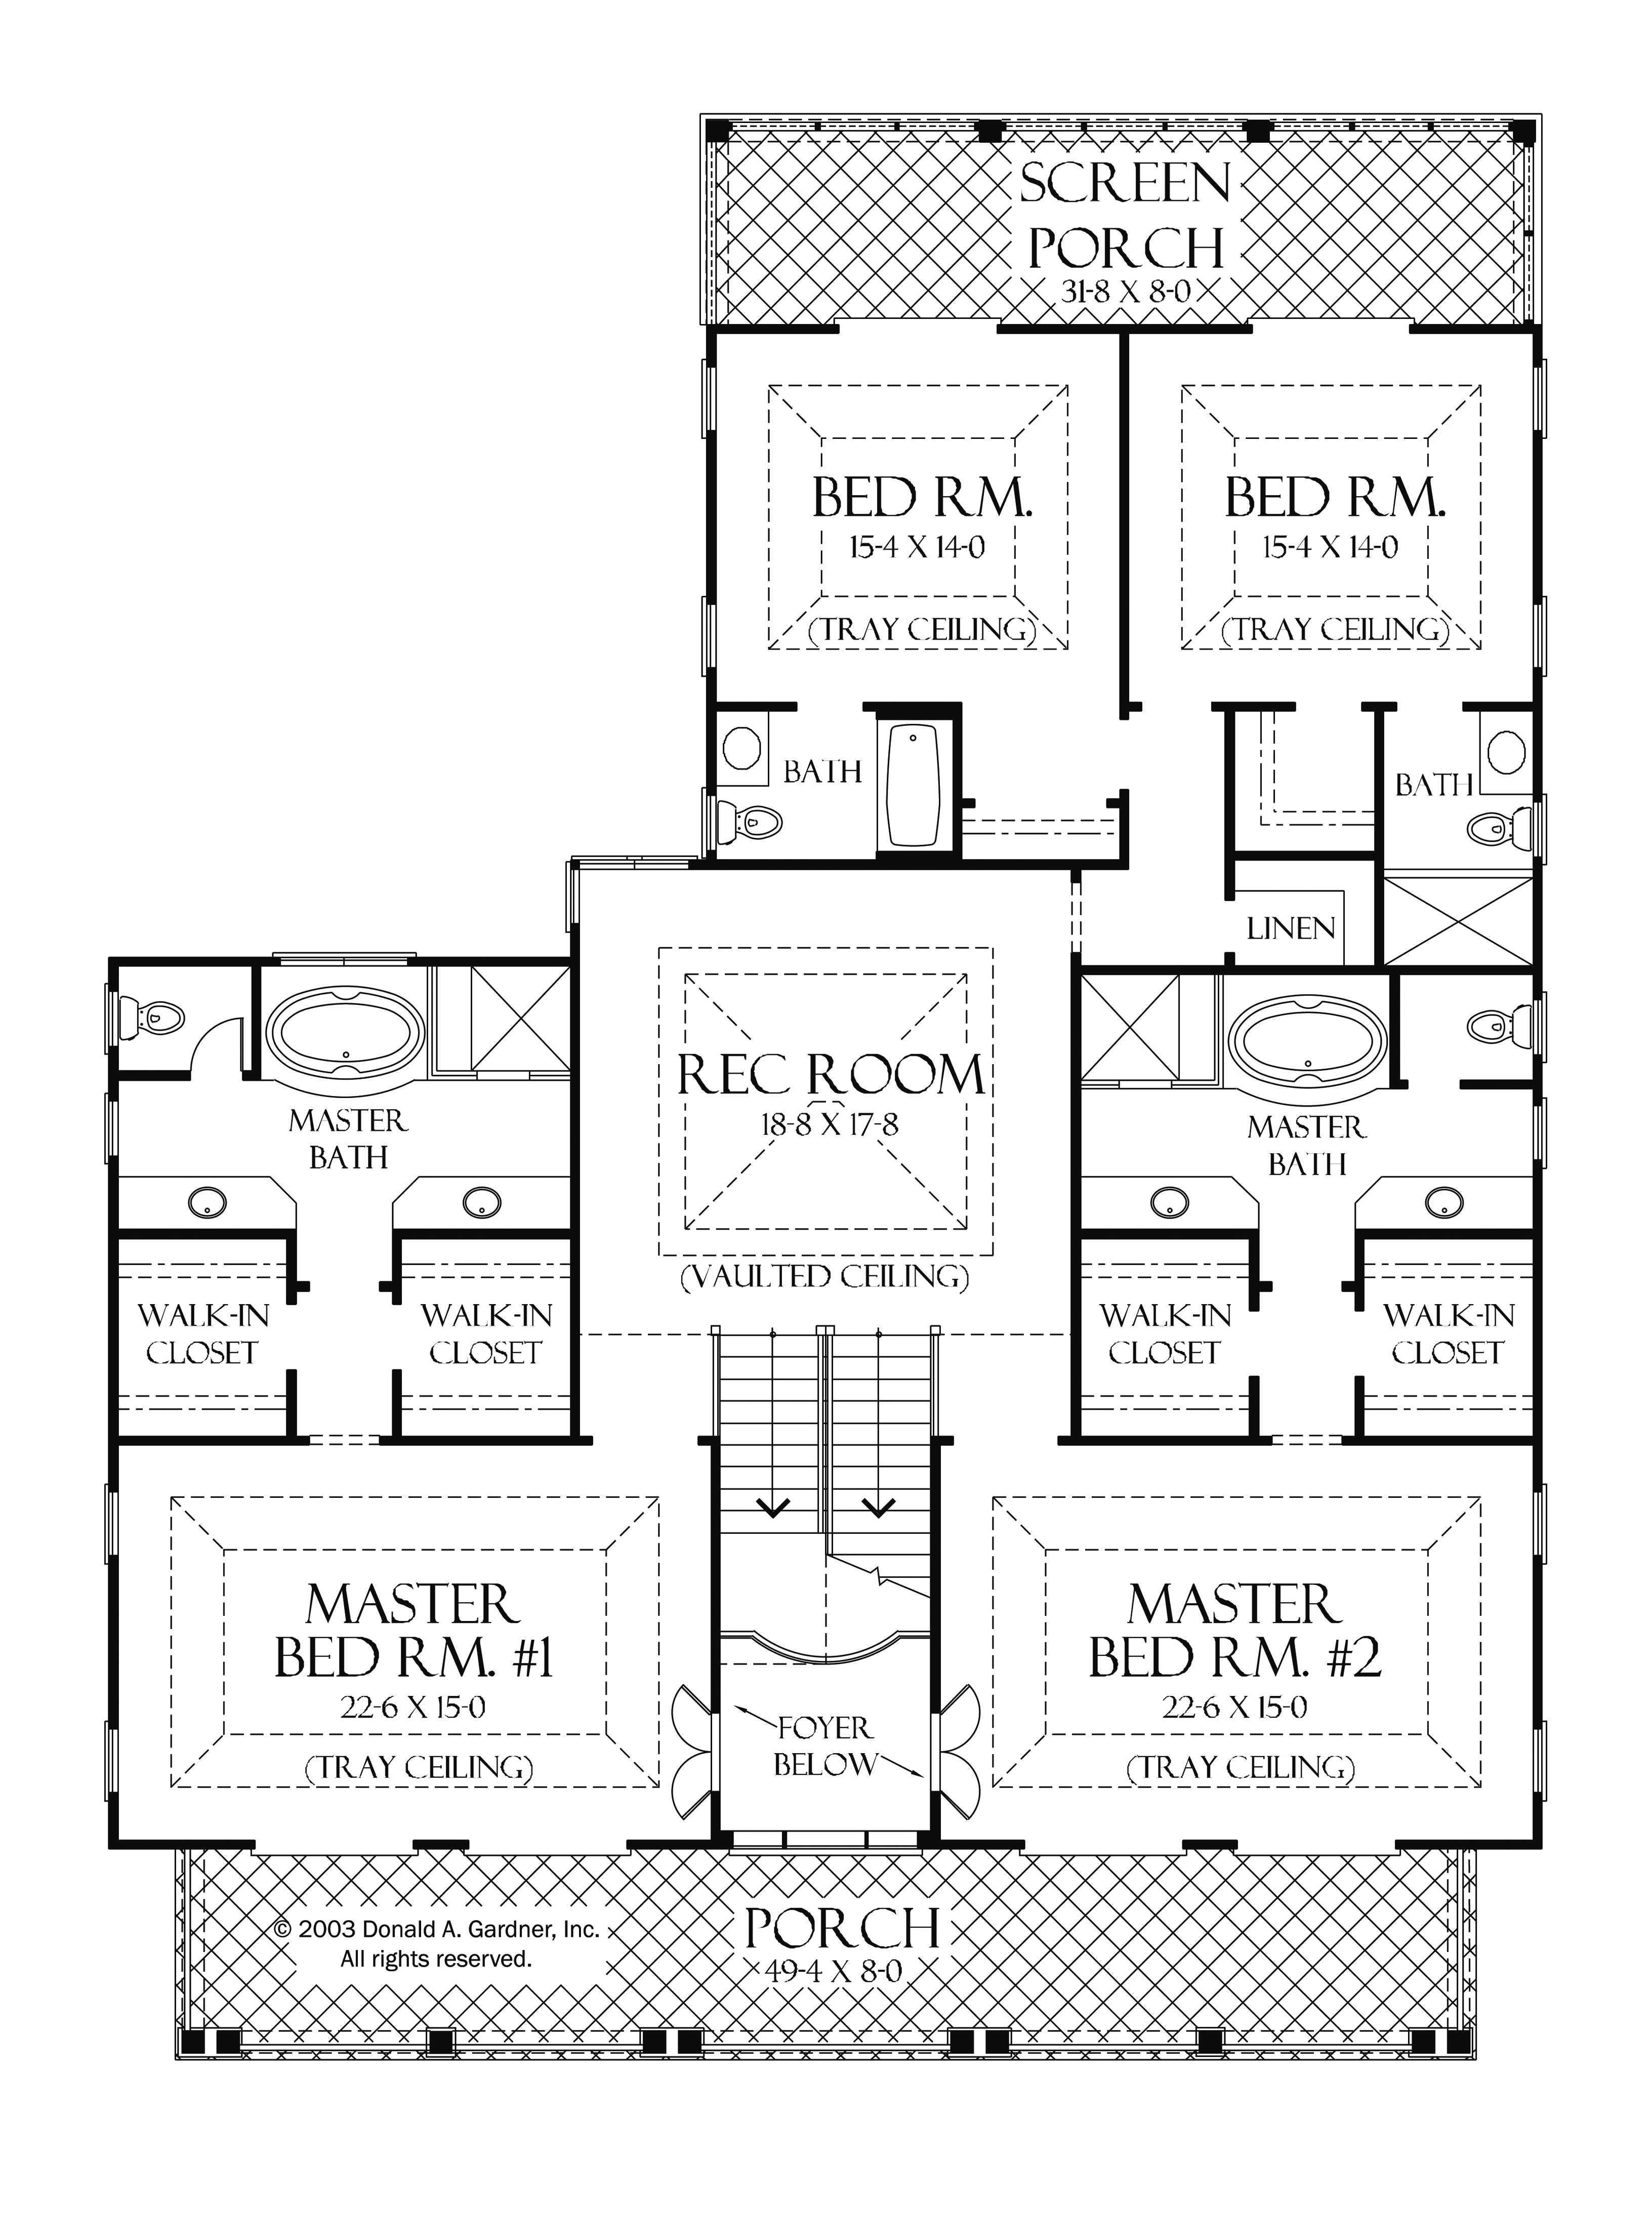 1000+ images about house plans - 2 master suites on pinterest